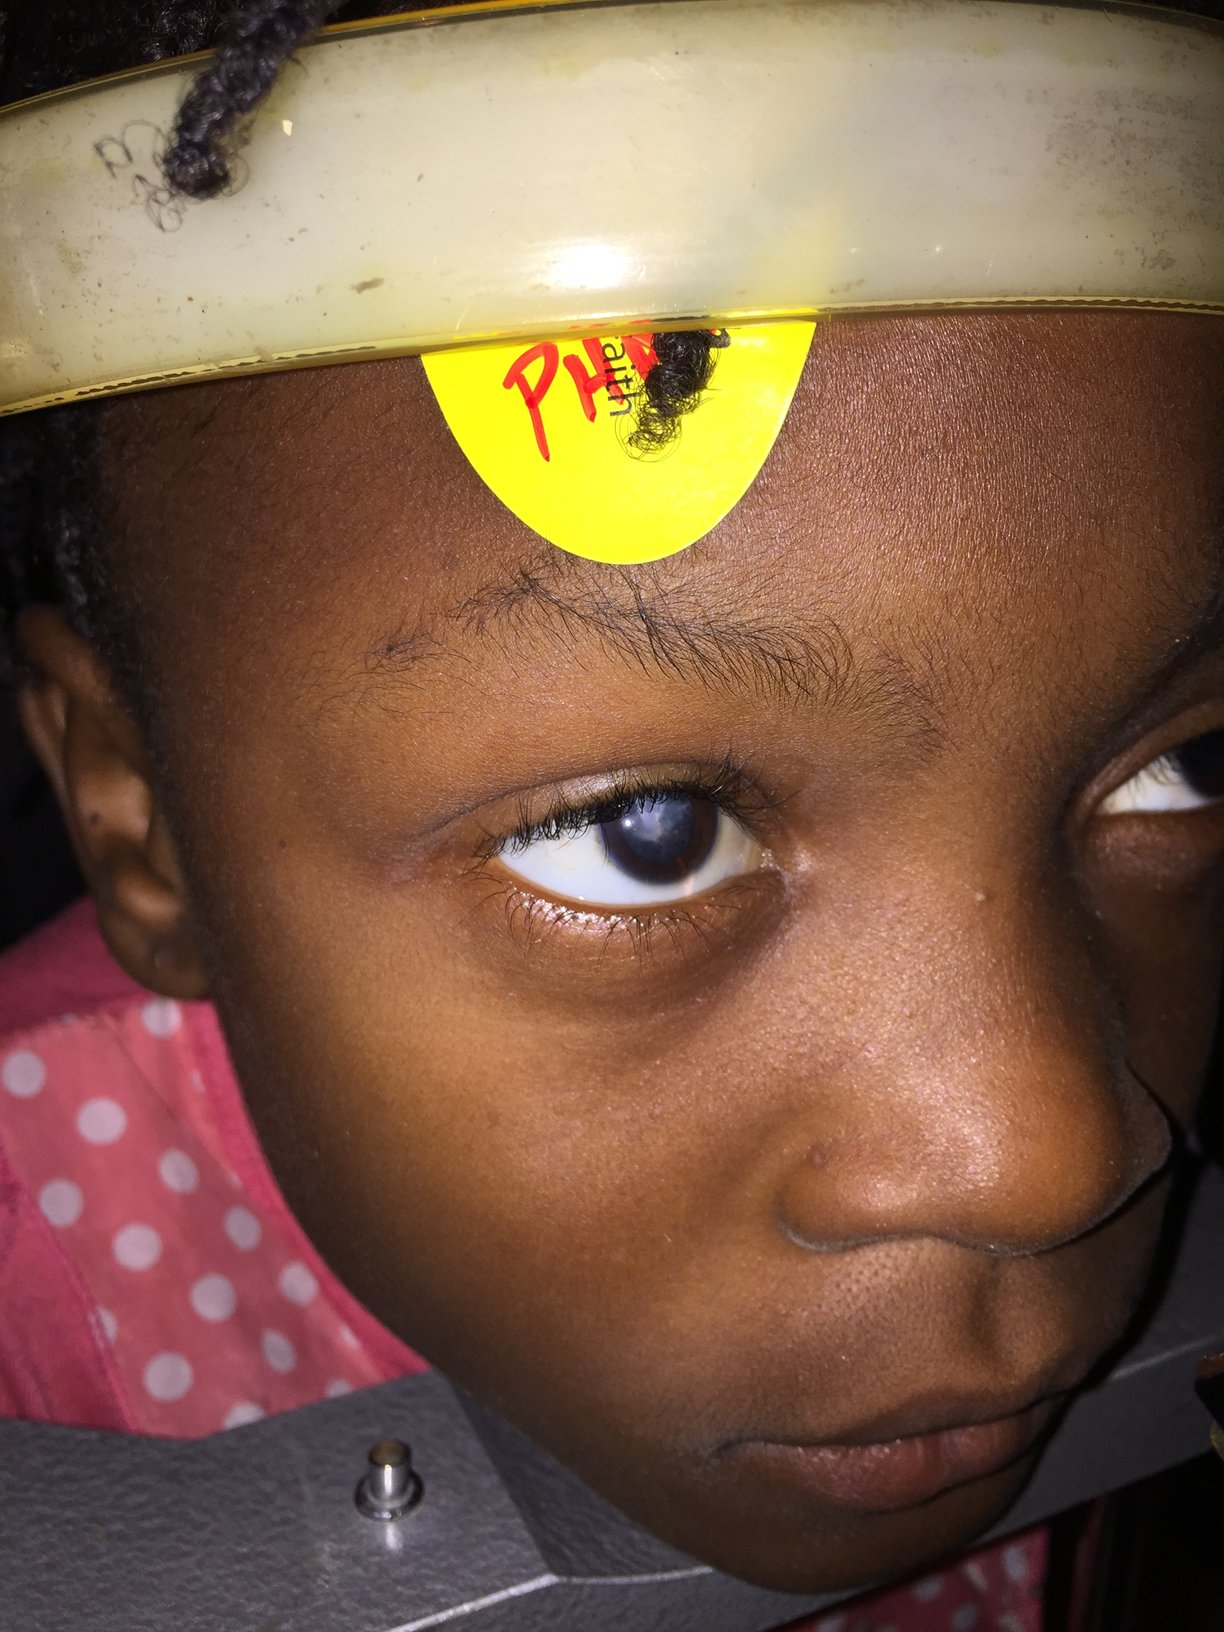 9 year old girl with cataract in her right eye.